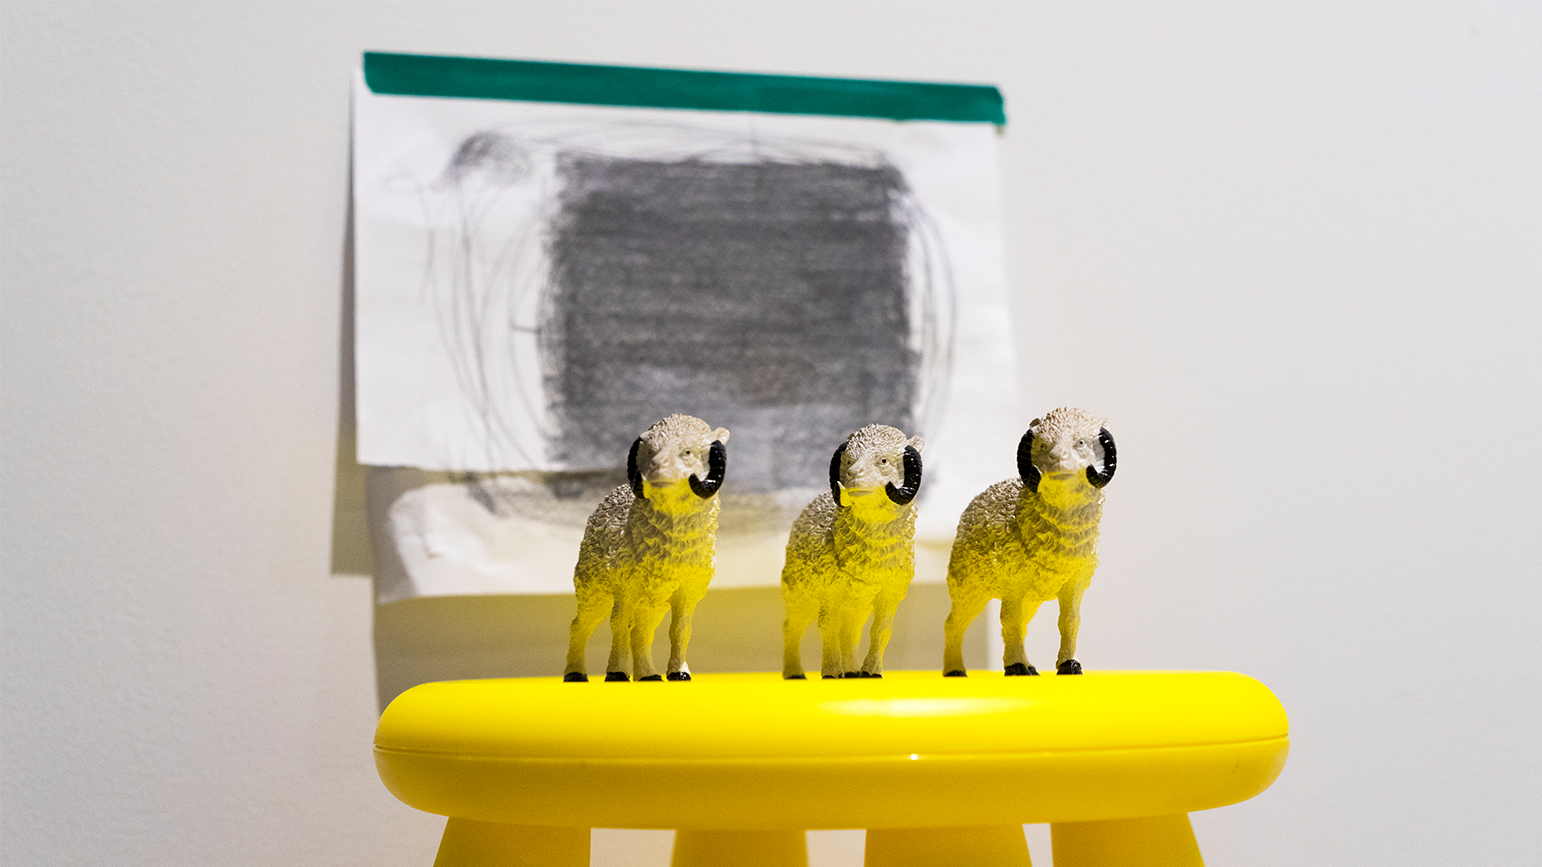 Three ram figurines on a stool with a drawing of a square taped on the wall behind